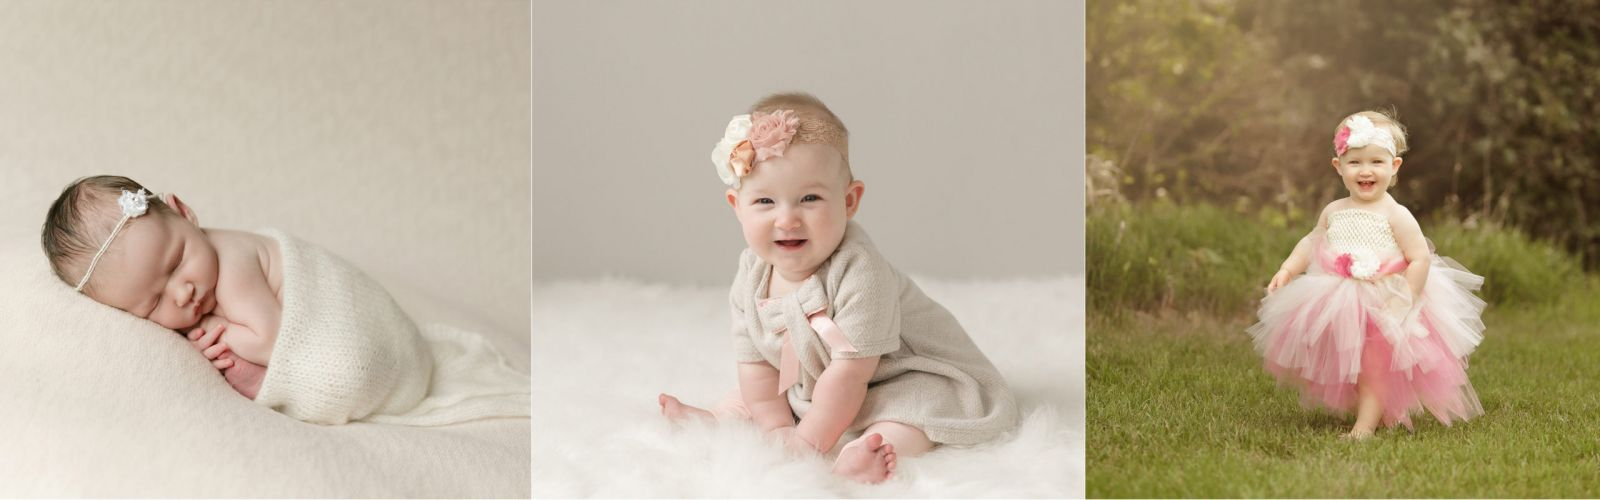 minneapolis first year baby plan photography packages grow with me